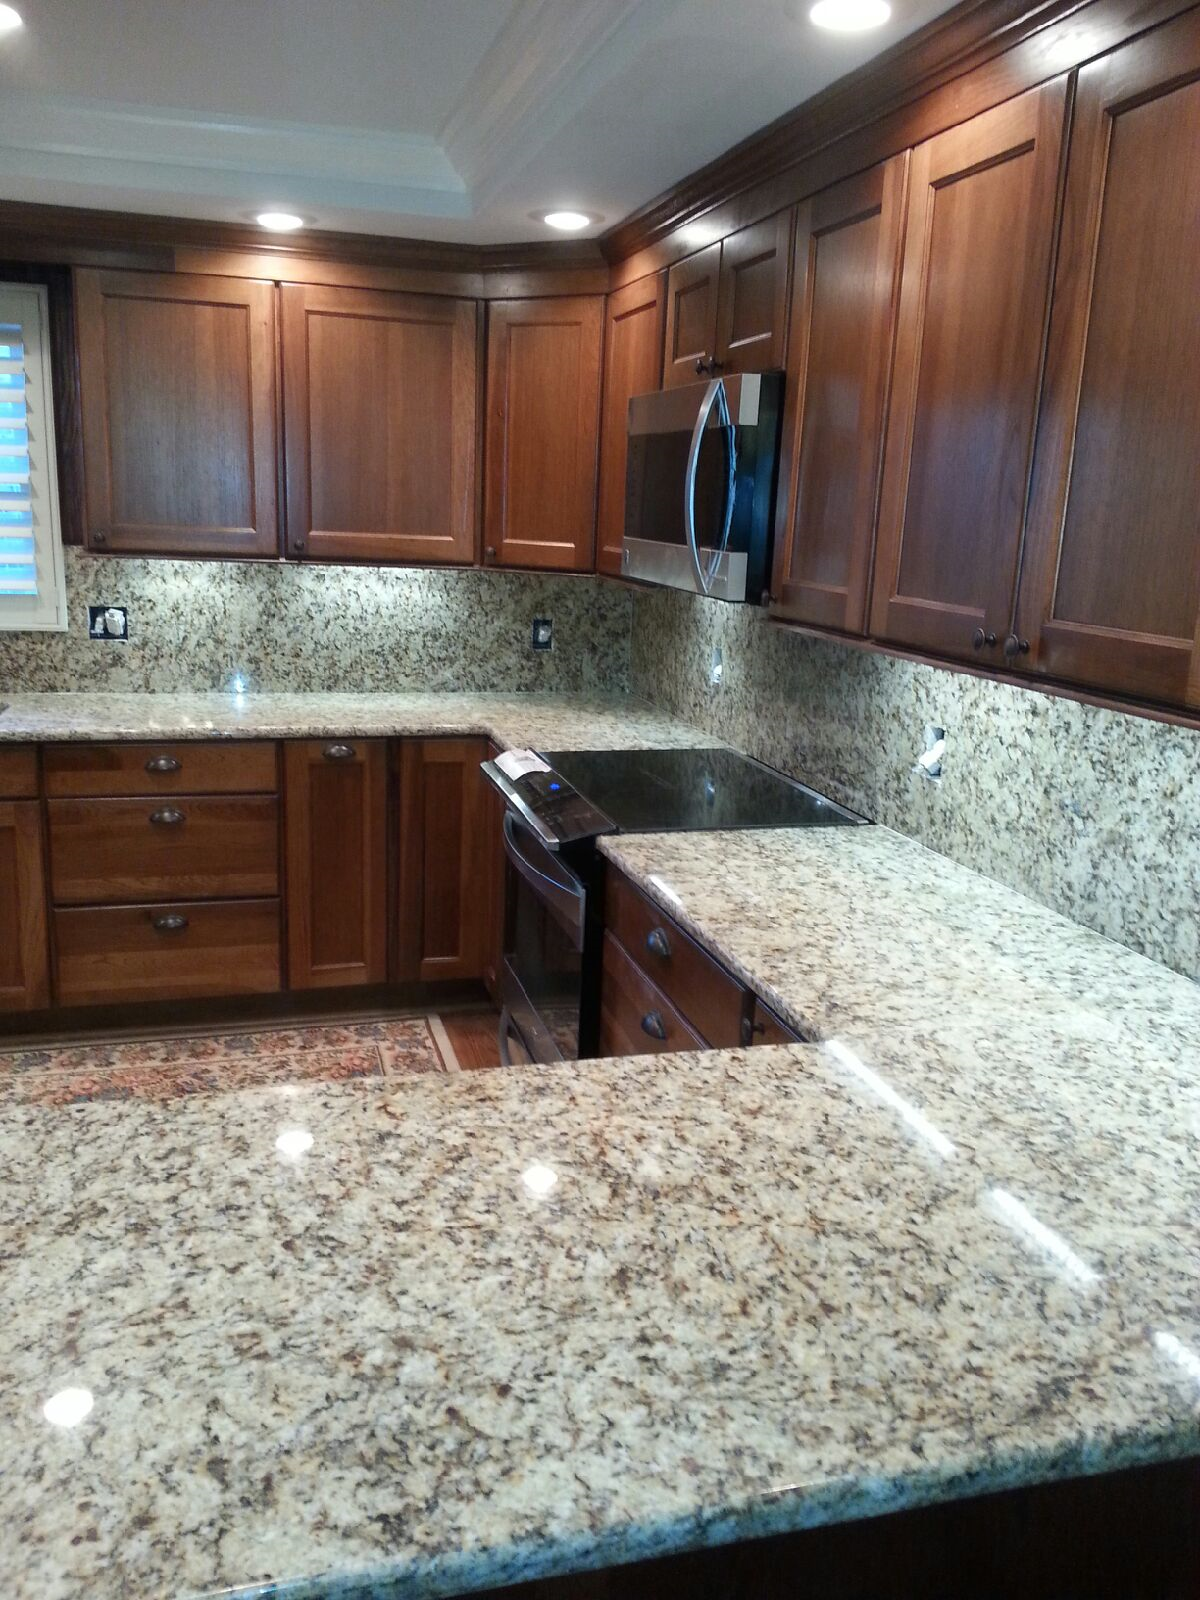 Top Granite : Granite counter tops can look sharp - but how do you choose the right ...